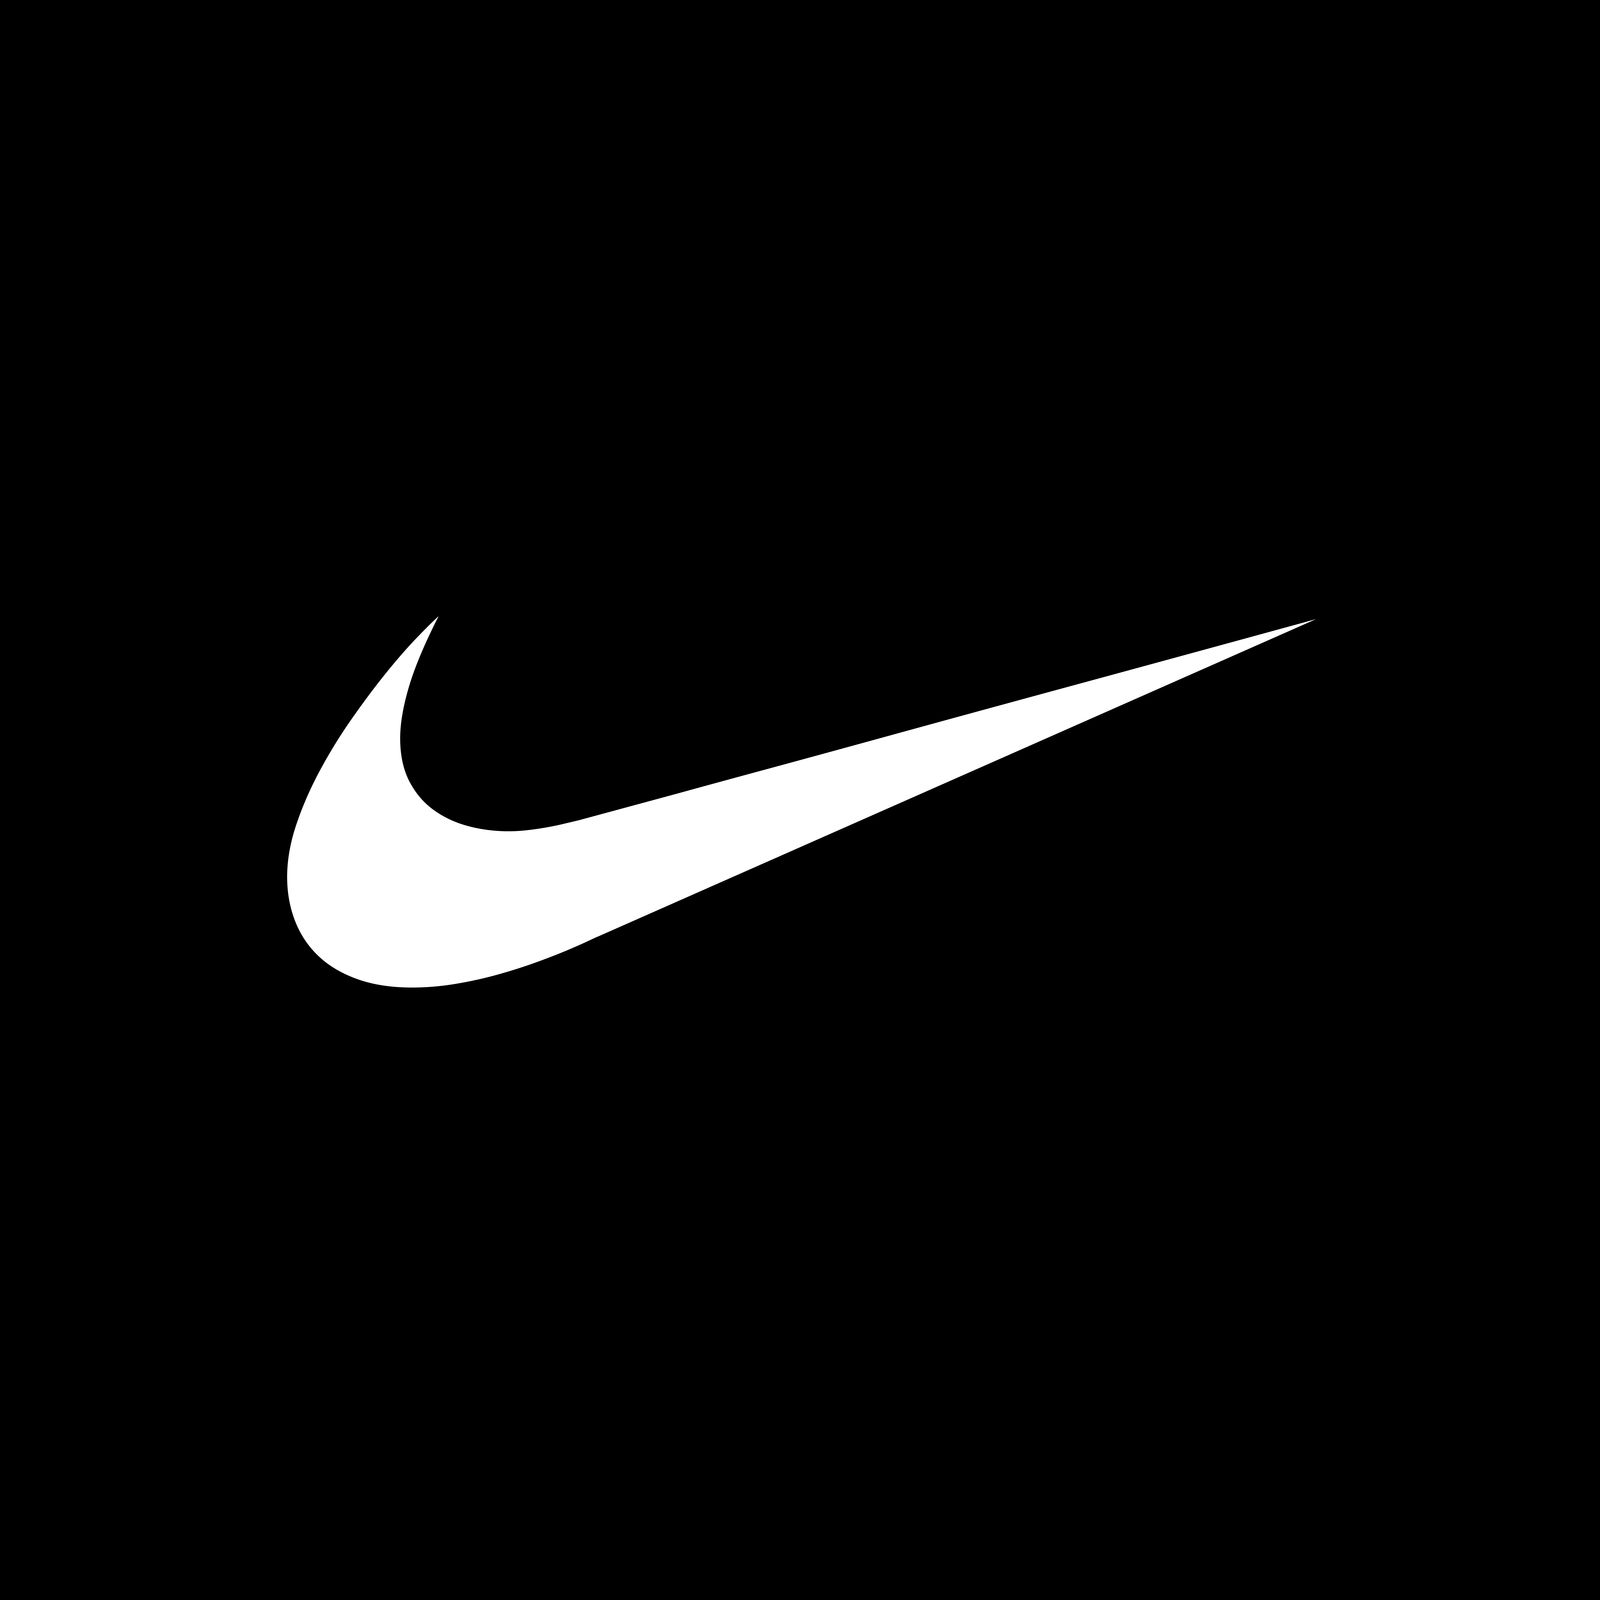 NIKE BASKETBALL (Image 1)